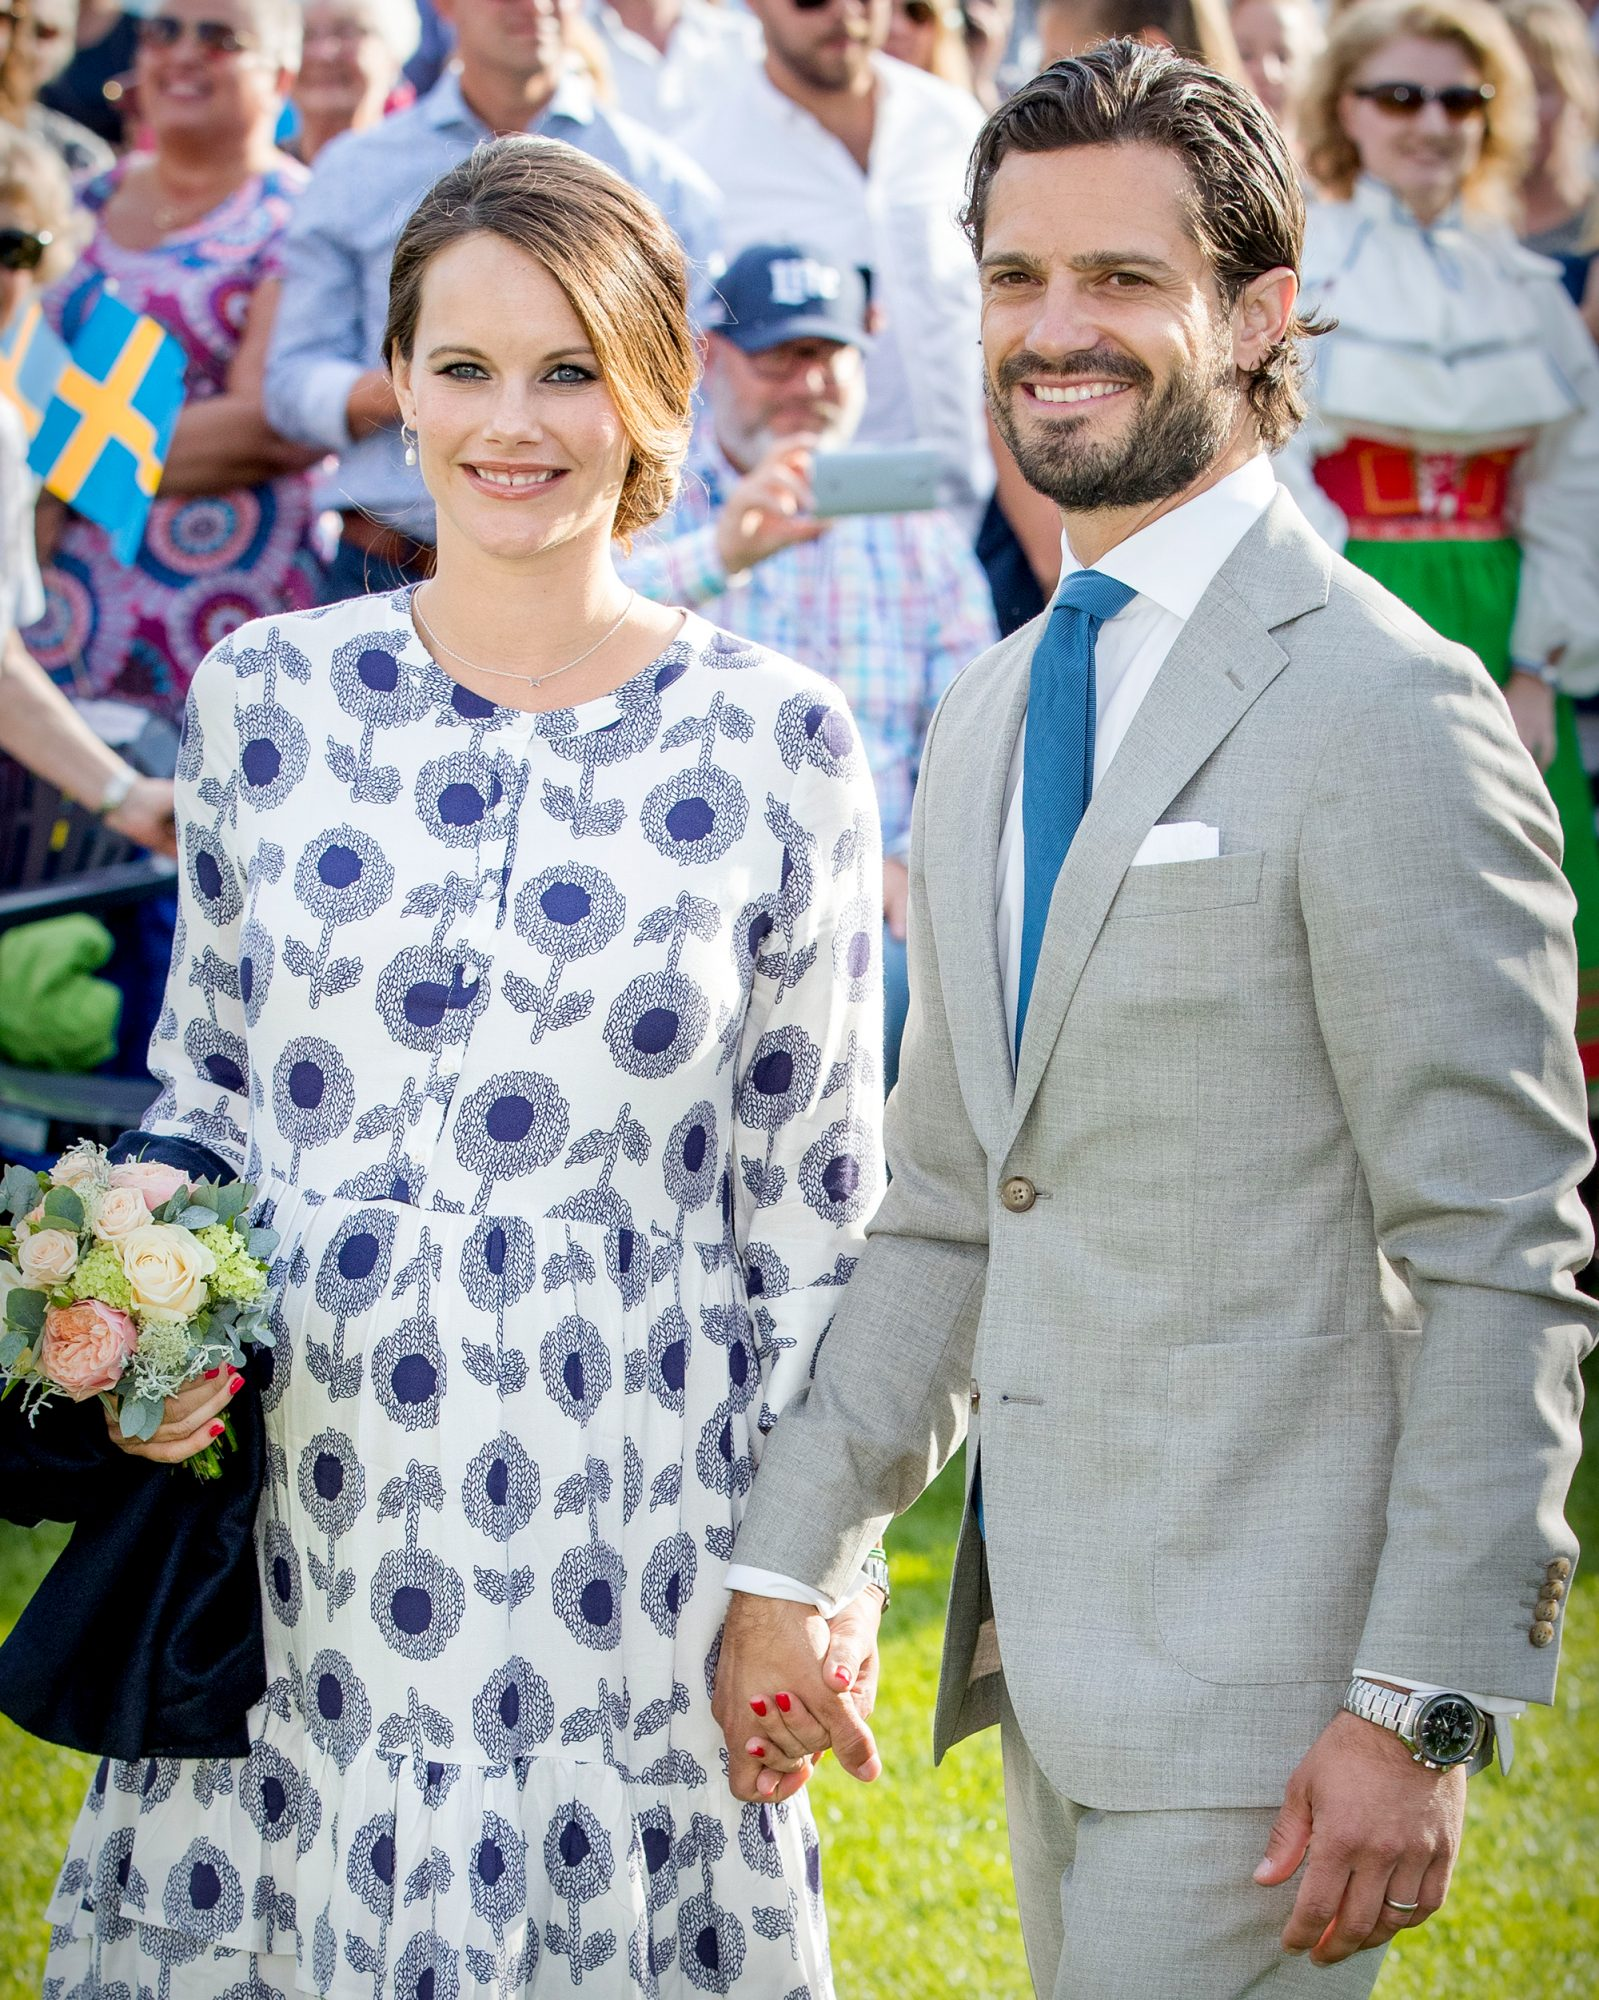 A New Royal Baby Is Here! Princess Sofia and Prince Carl Philip Welcome Second Child